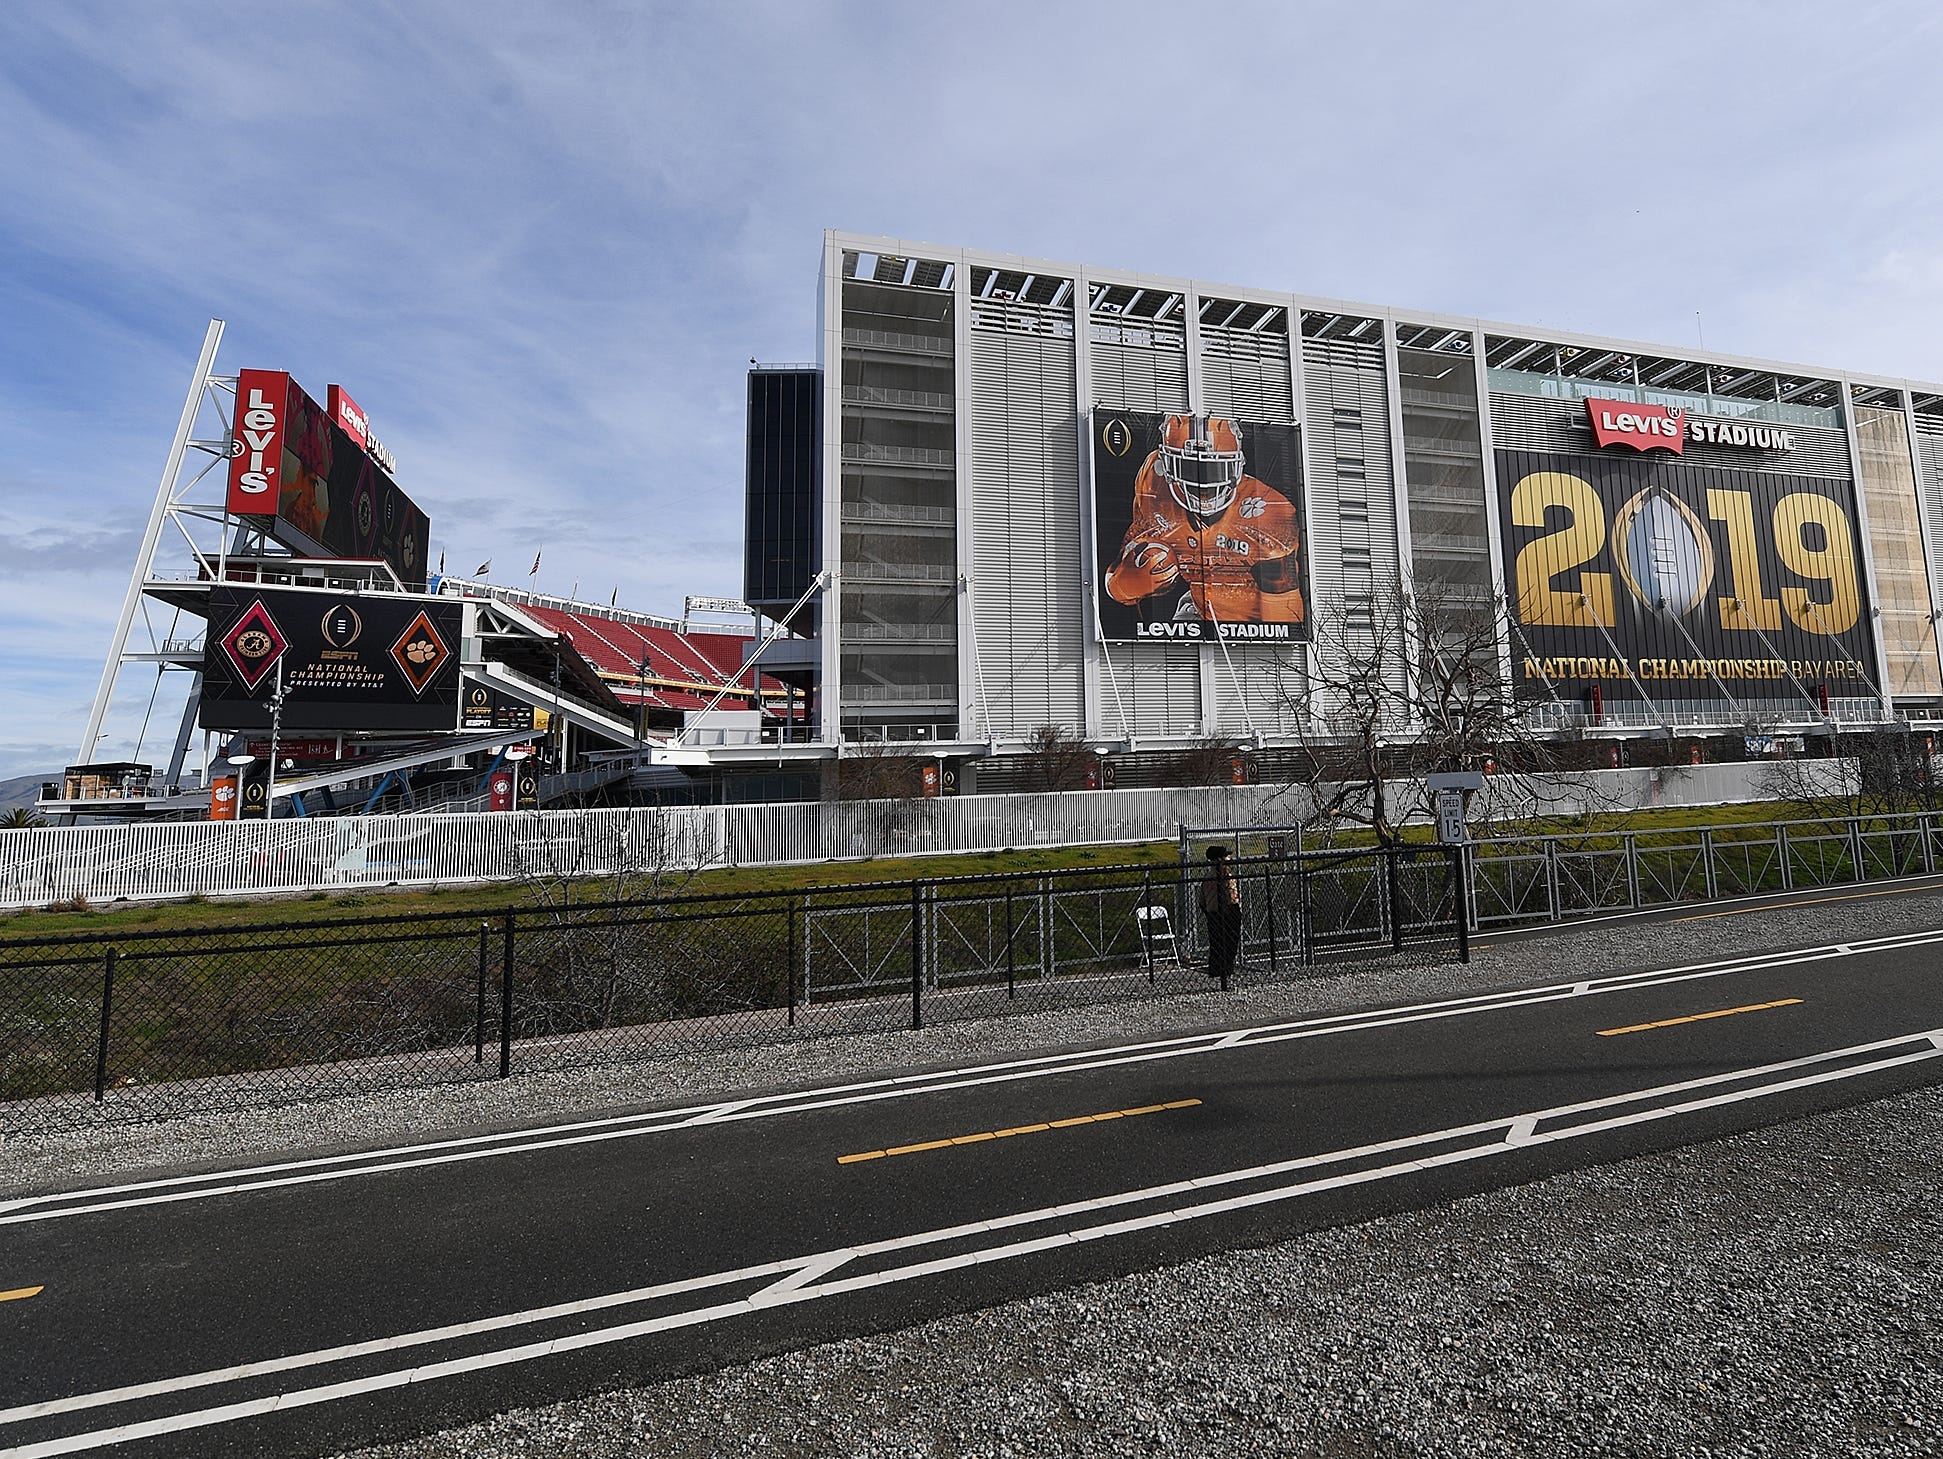 Levi's Stadium in Santa Clara, CA is decorated for the College Football National Championship Monday, January 7, 2019.